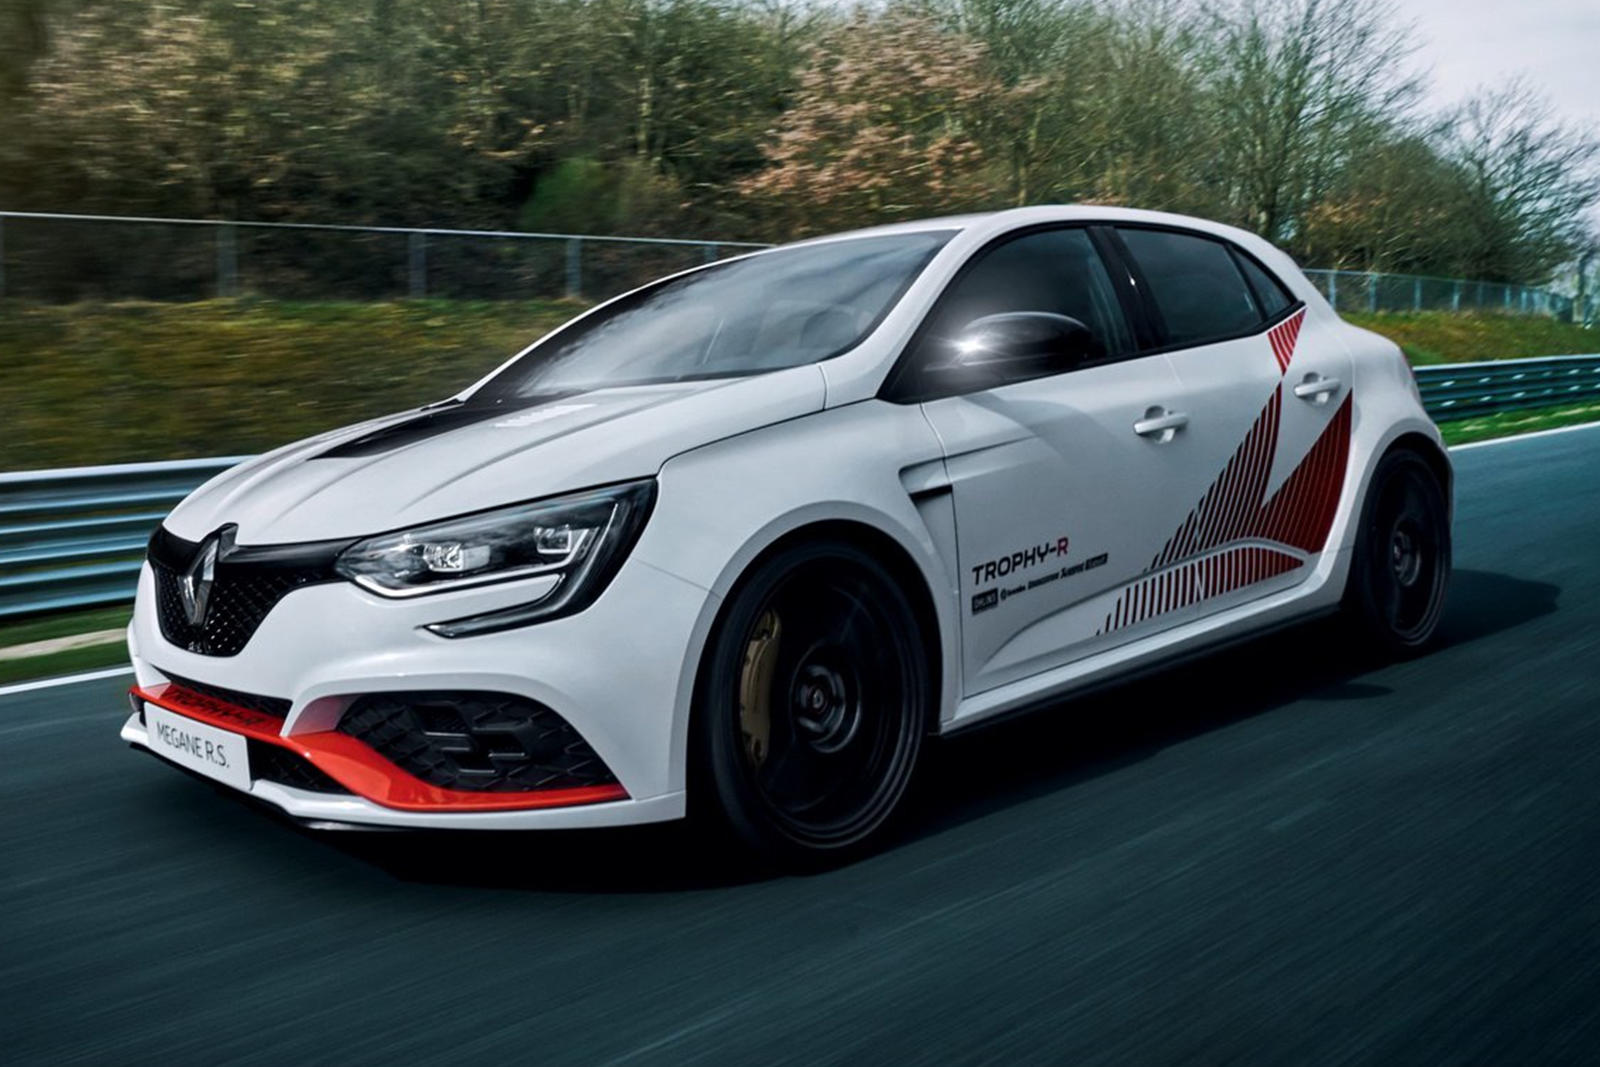 Honda Civic Type R's Nurburgring Record Finally Broken 3